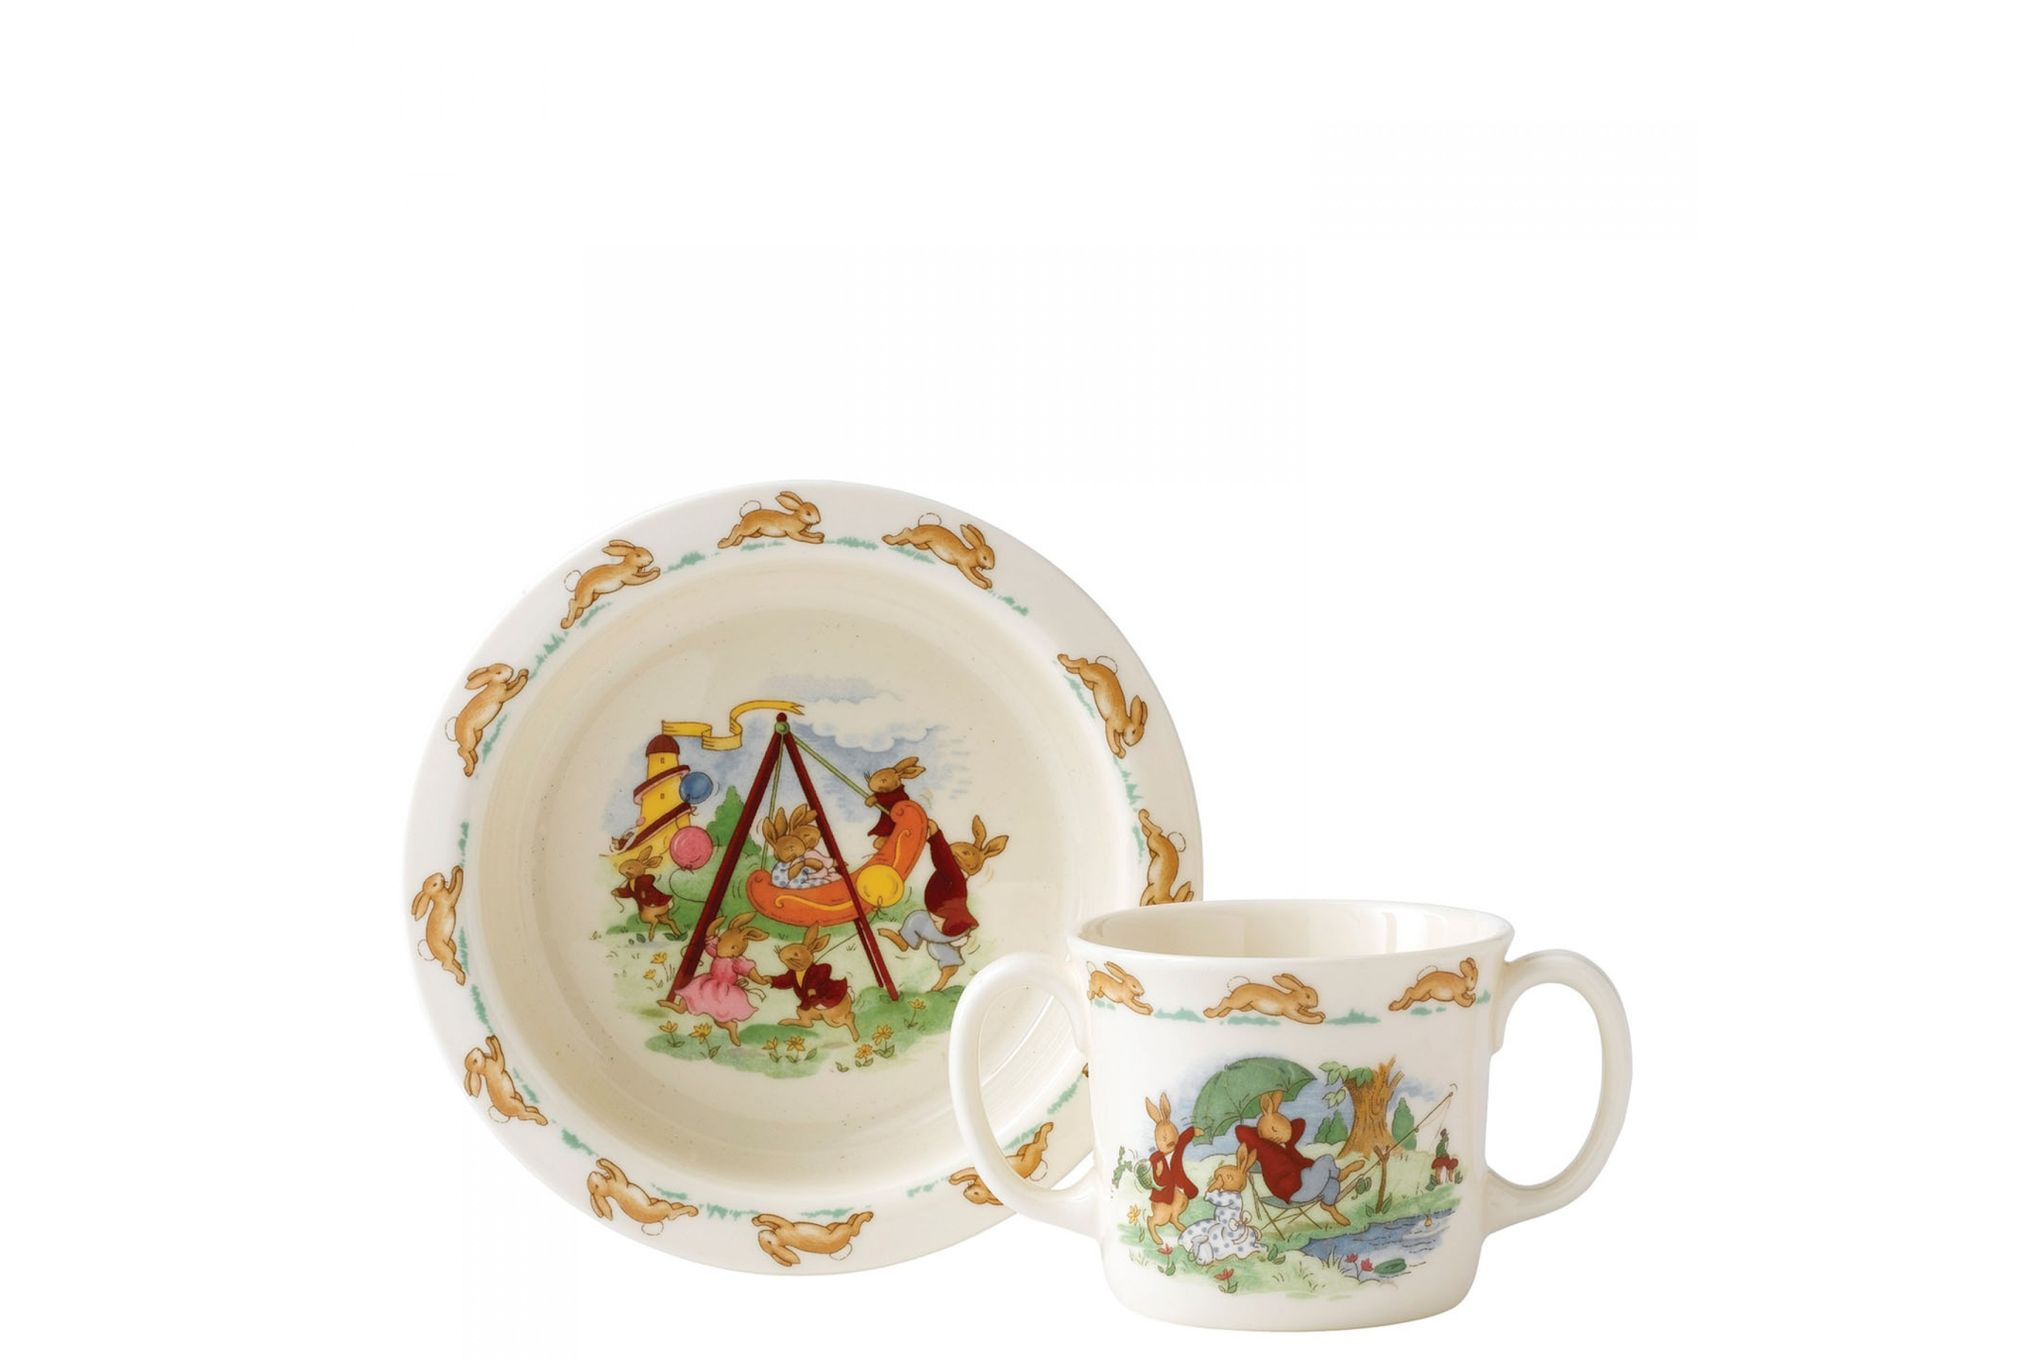 Royal Doulton Bunnykins 2 Piece Set Baby Plate, 2 Handled Mug thumb 1